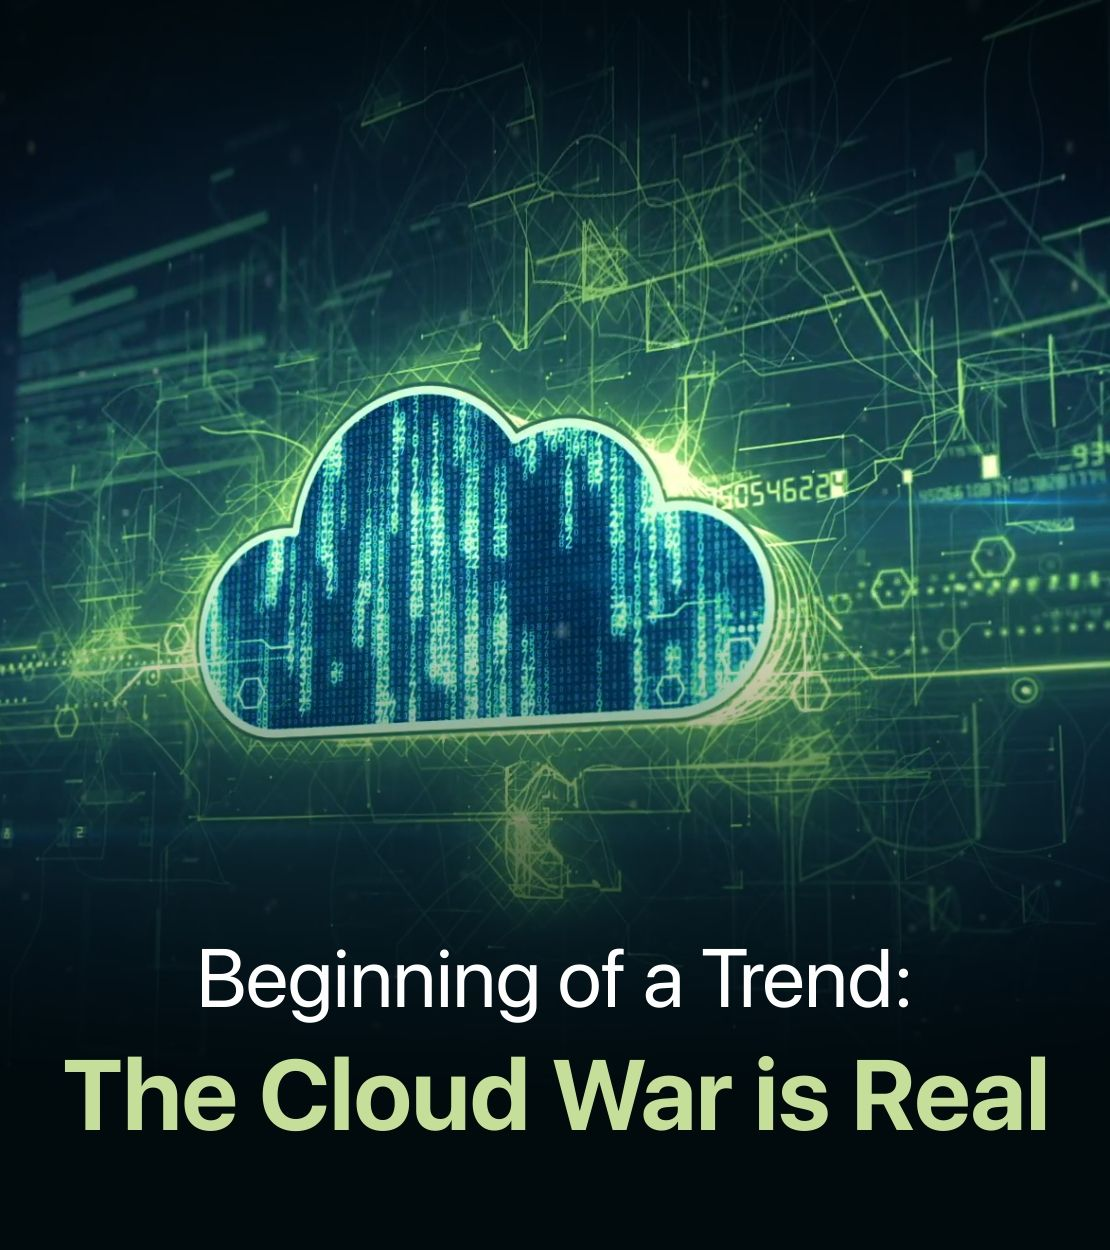 Beginning of a Trend: The Cloud War is Real